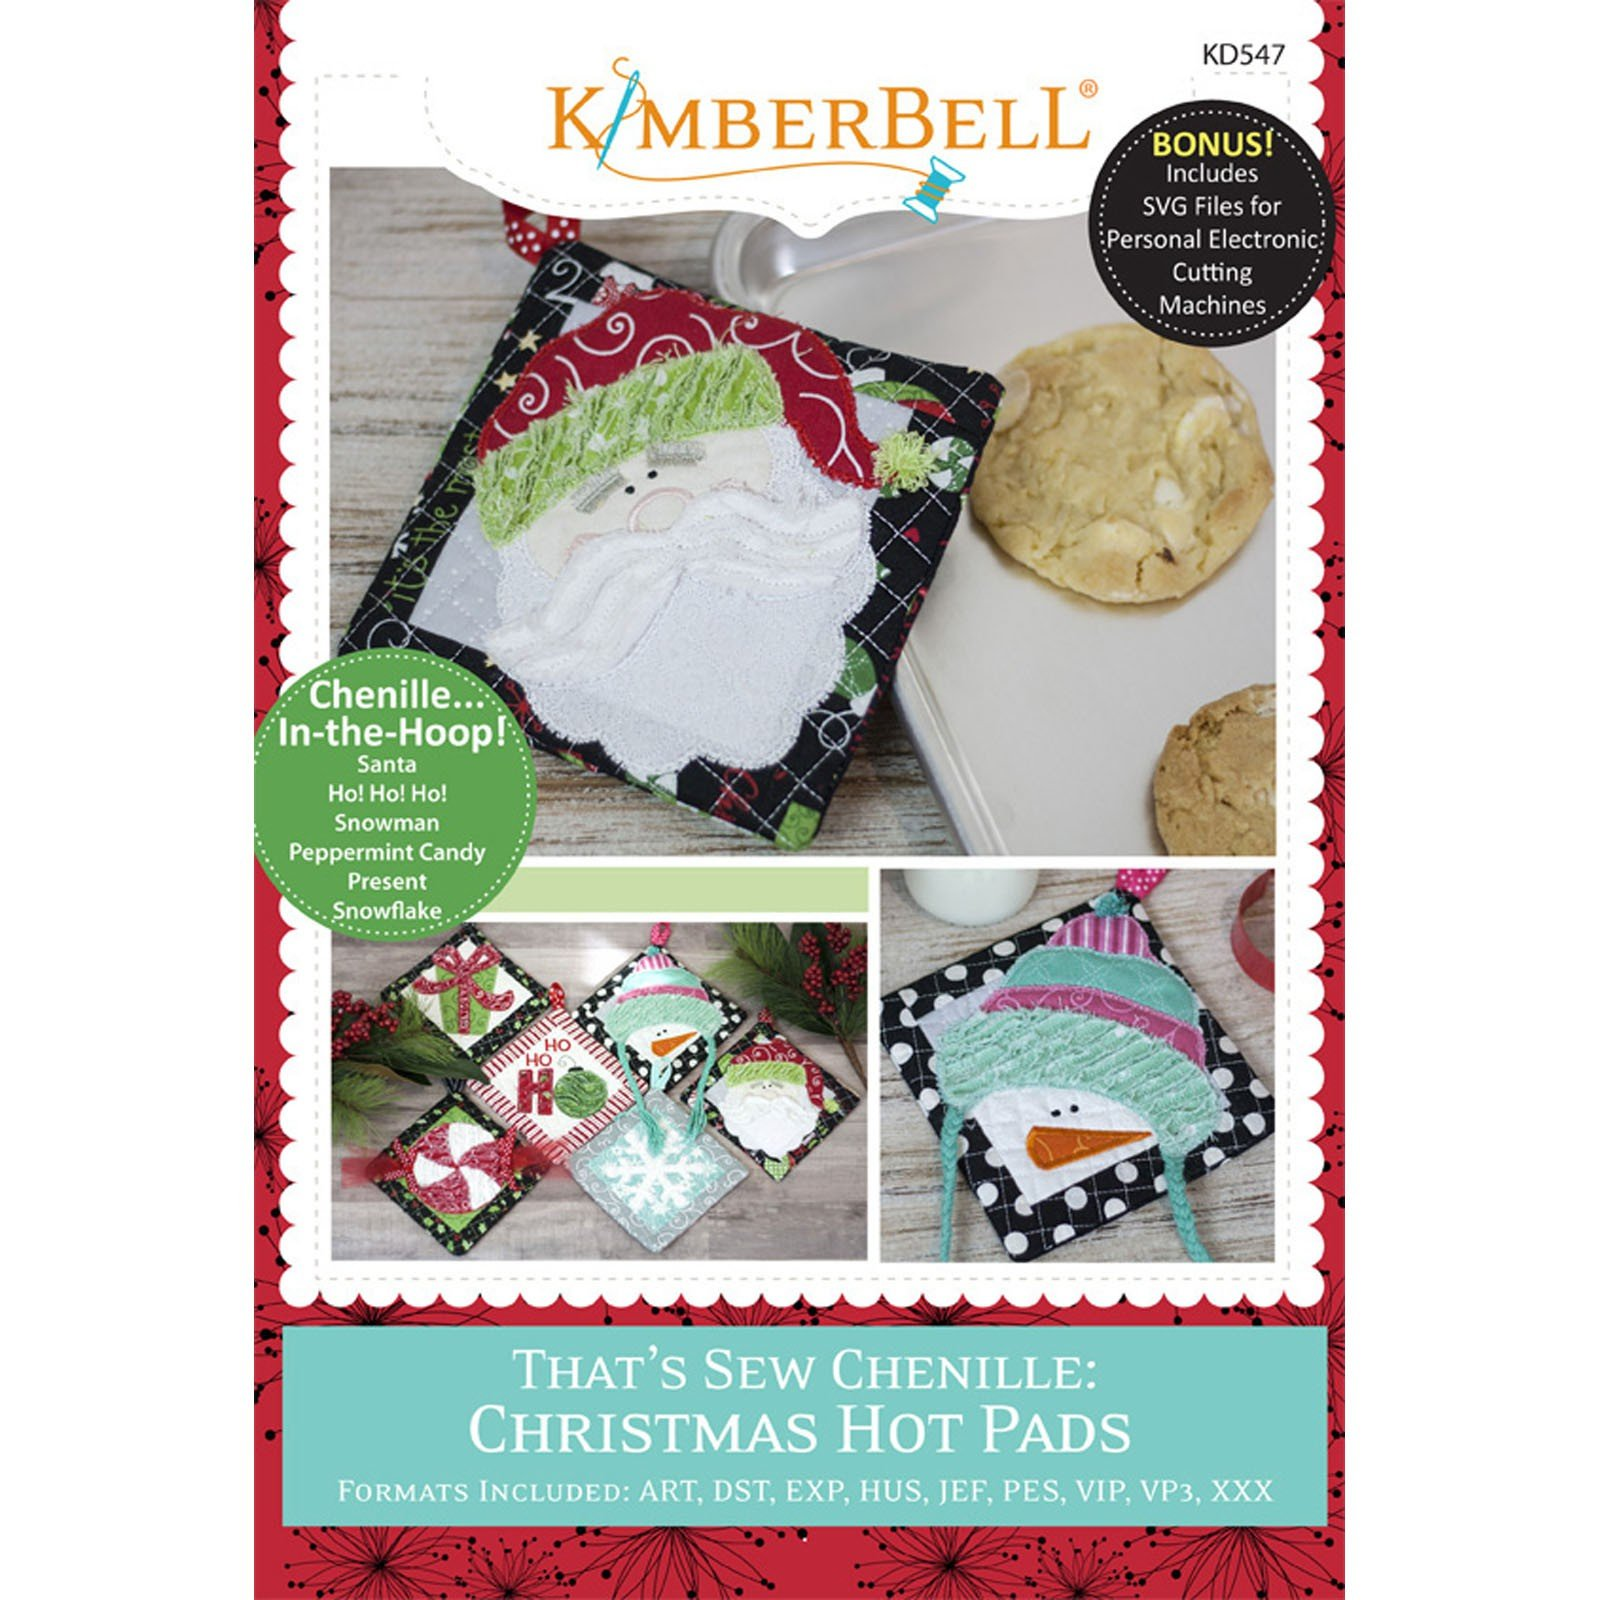 That's Sew Chenille: Christmas Hot Pads (Embroidery CD) by Kimberbell